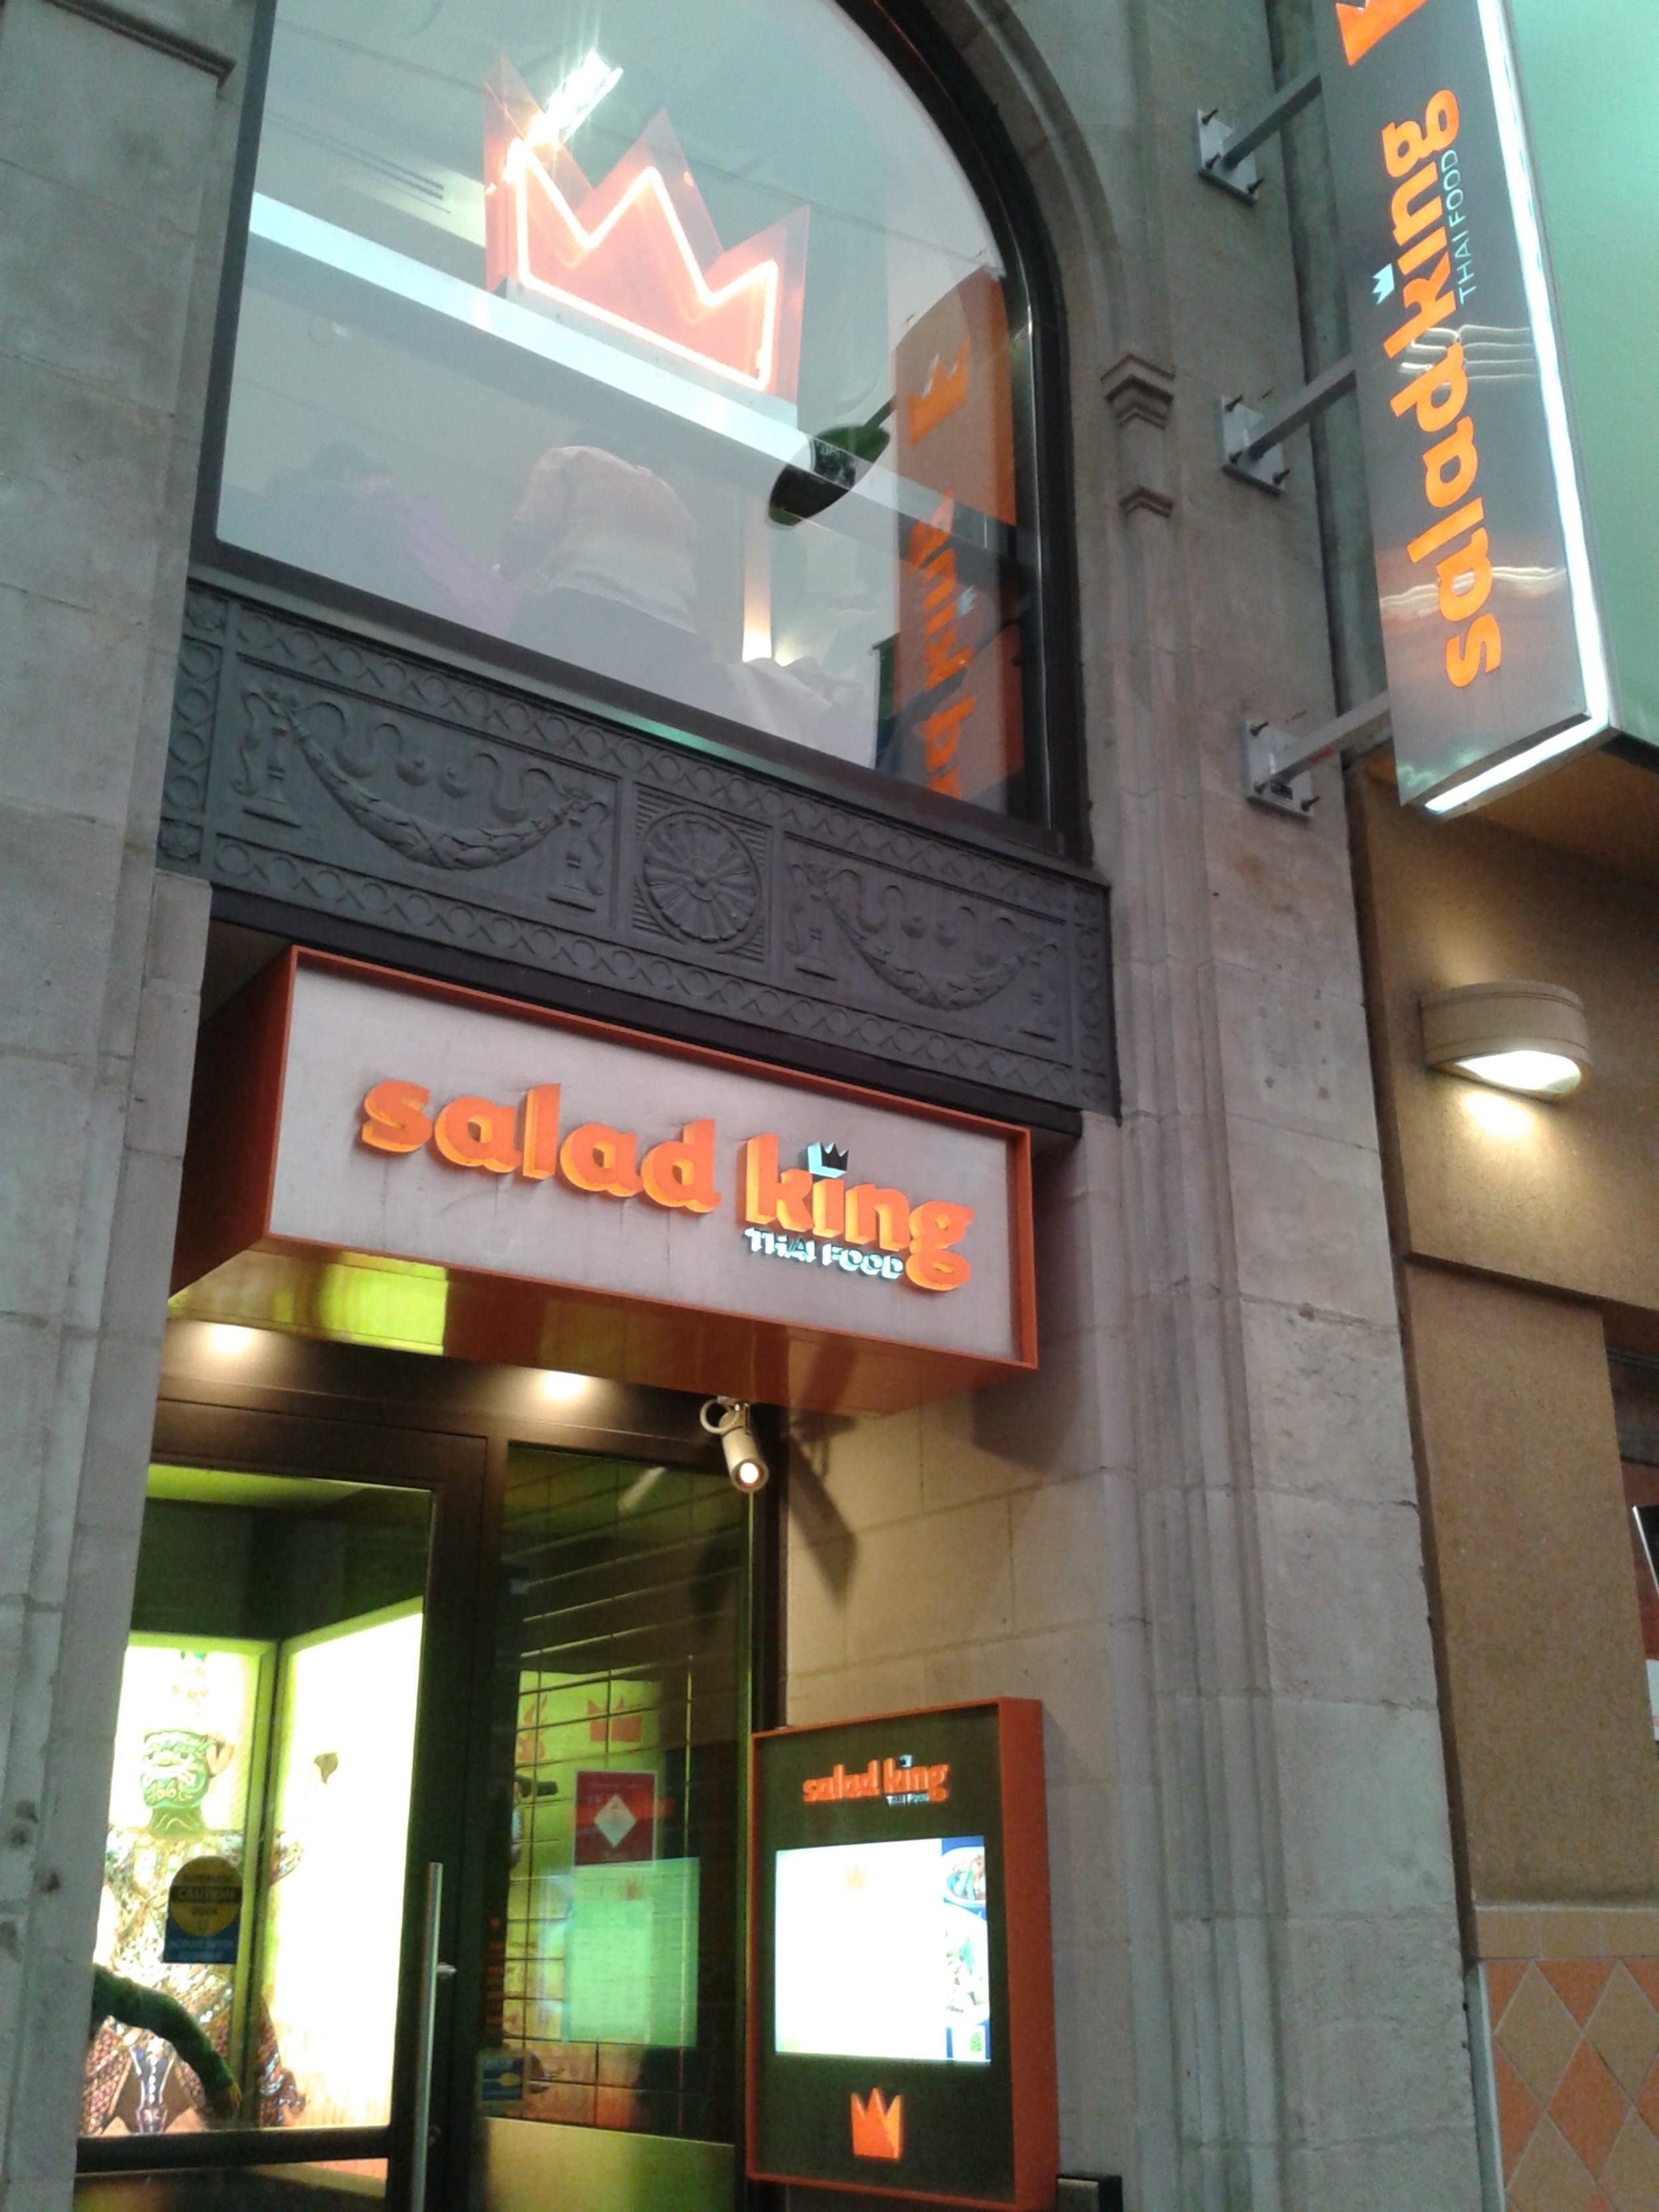 Picture of Salad King sign and entrance.